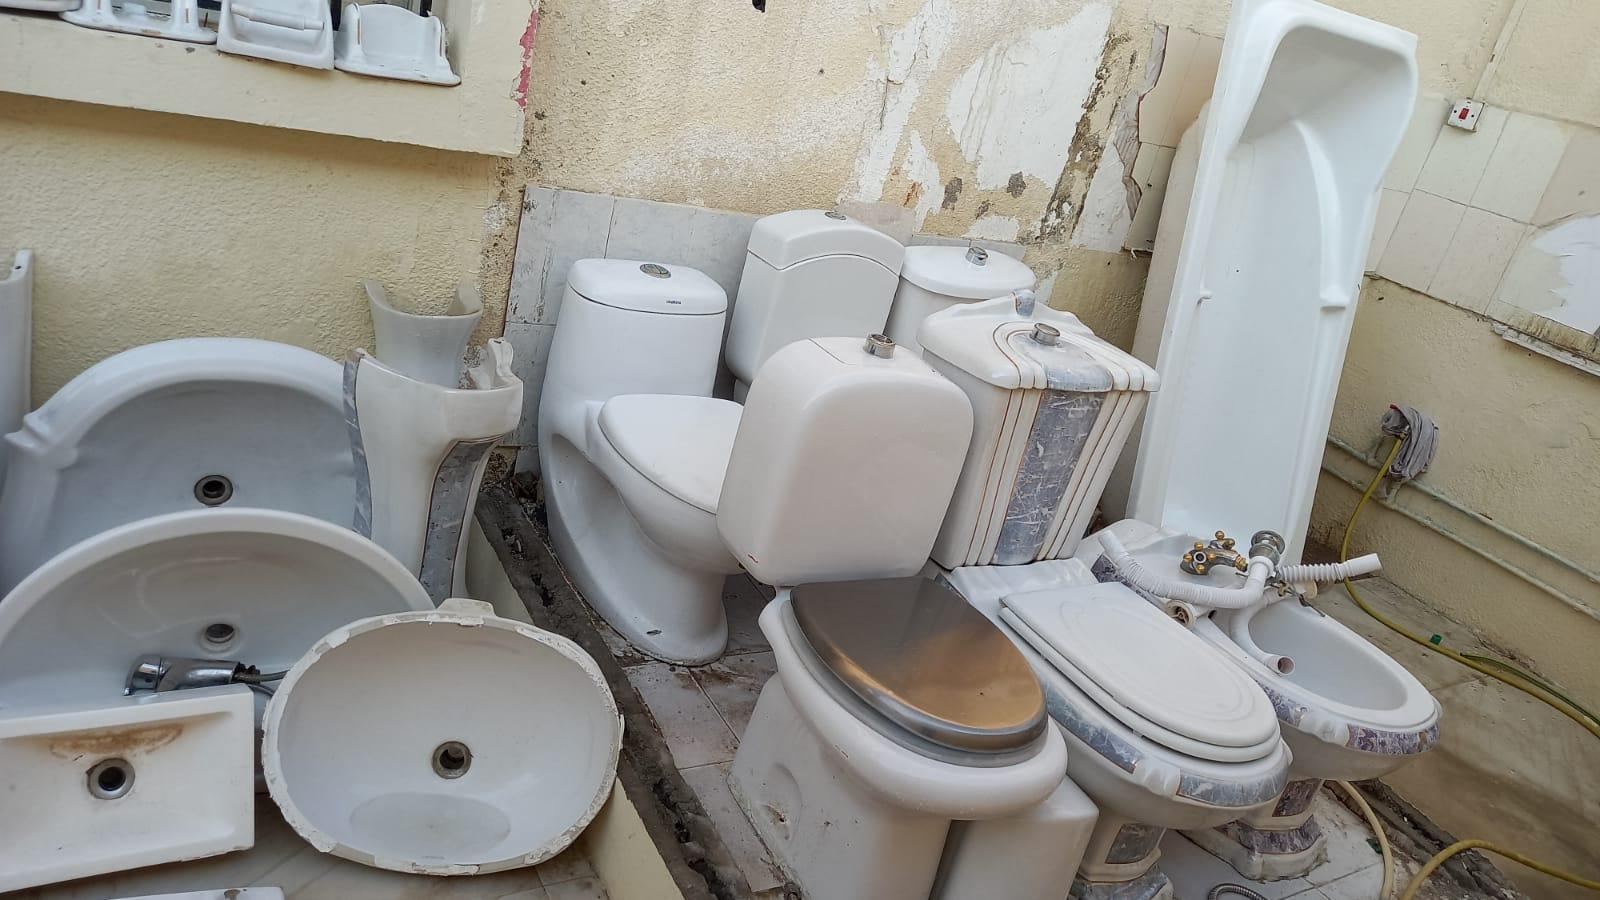 Used Sanitary items for SALE